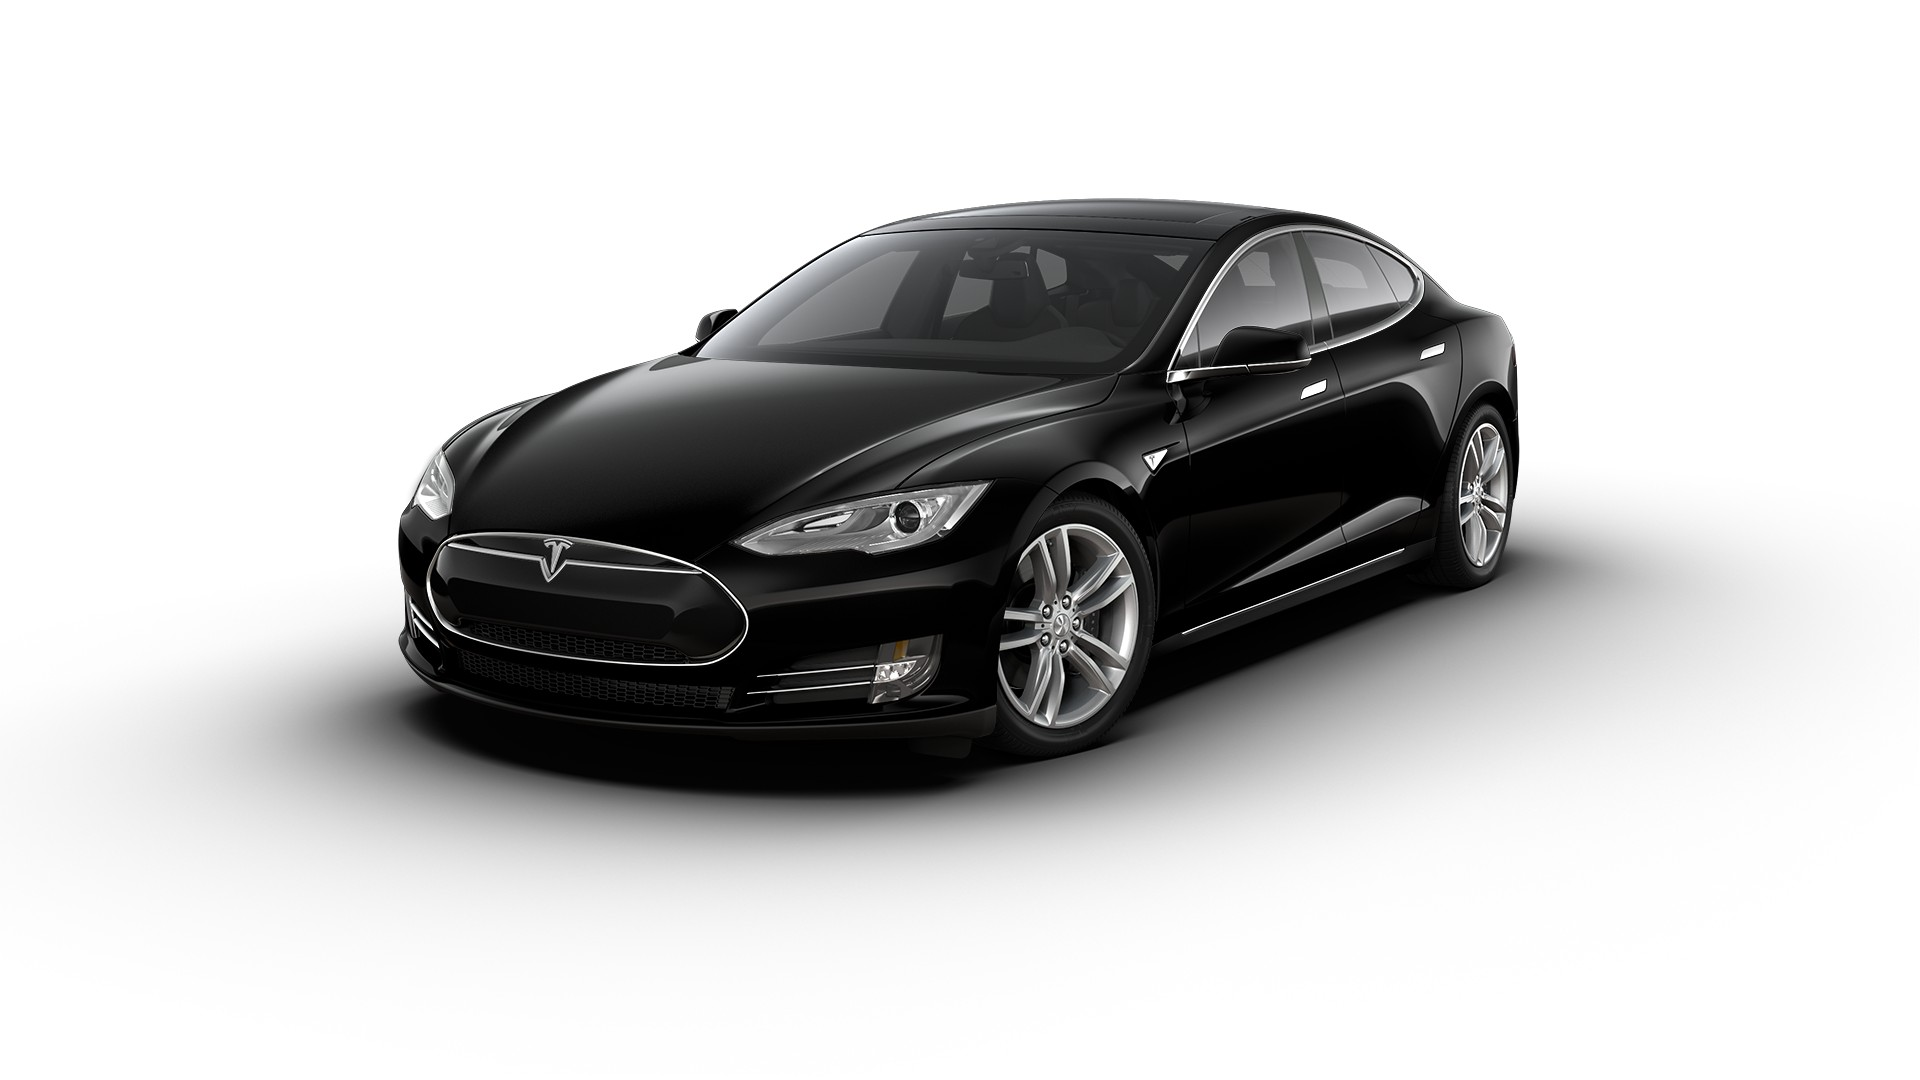 inventory tesla model s 60 Solid Black